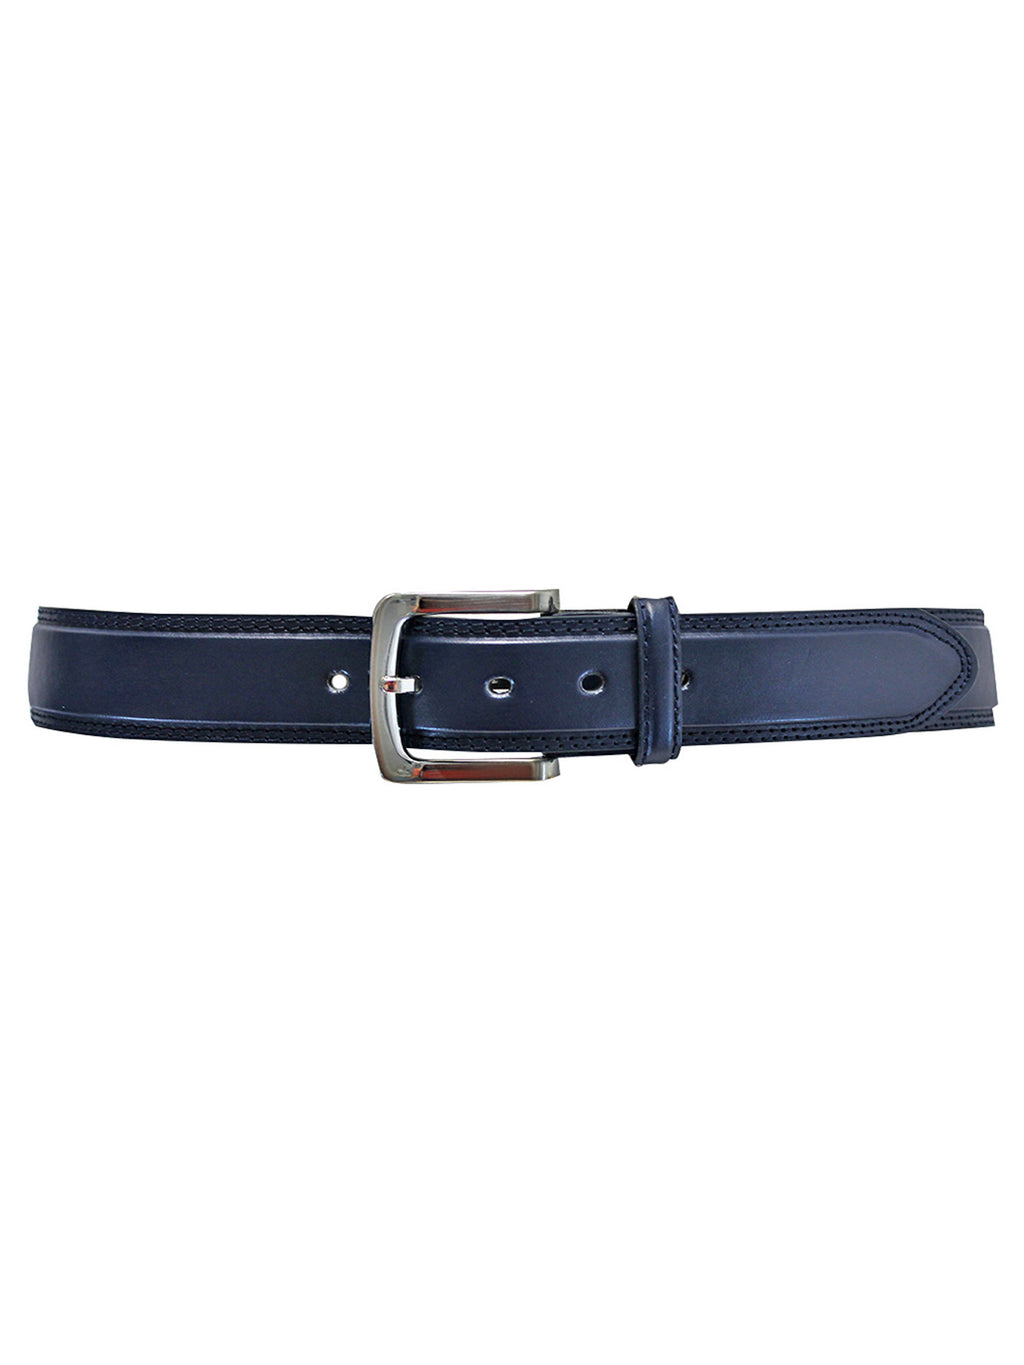 Men's Leather Belt With Silver Buckle